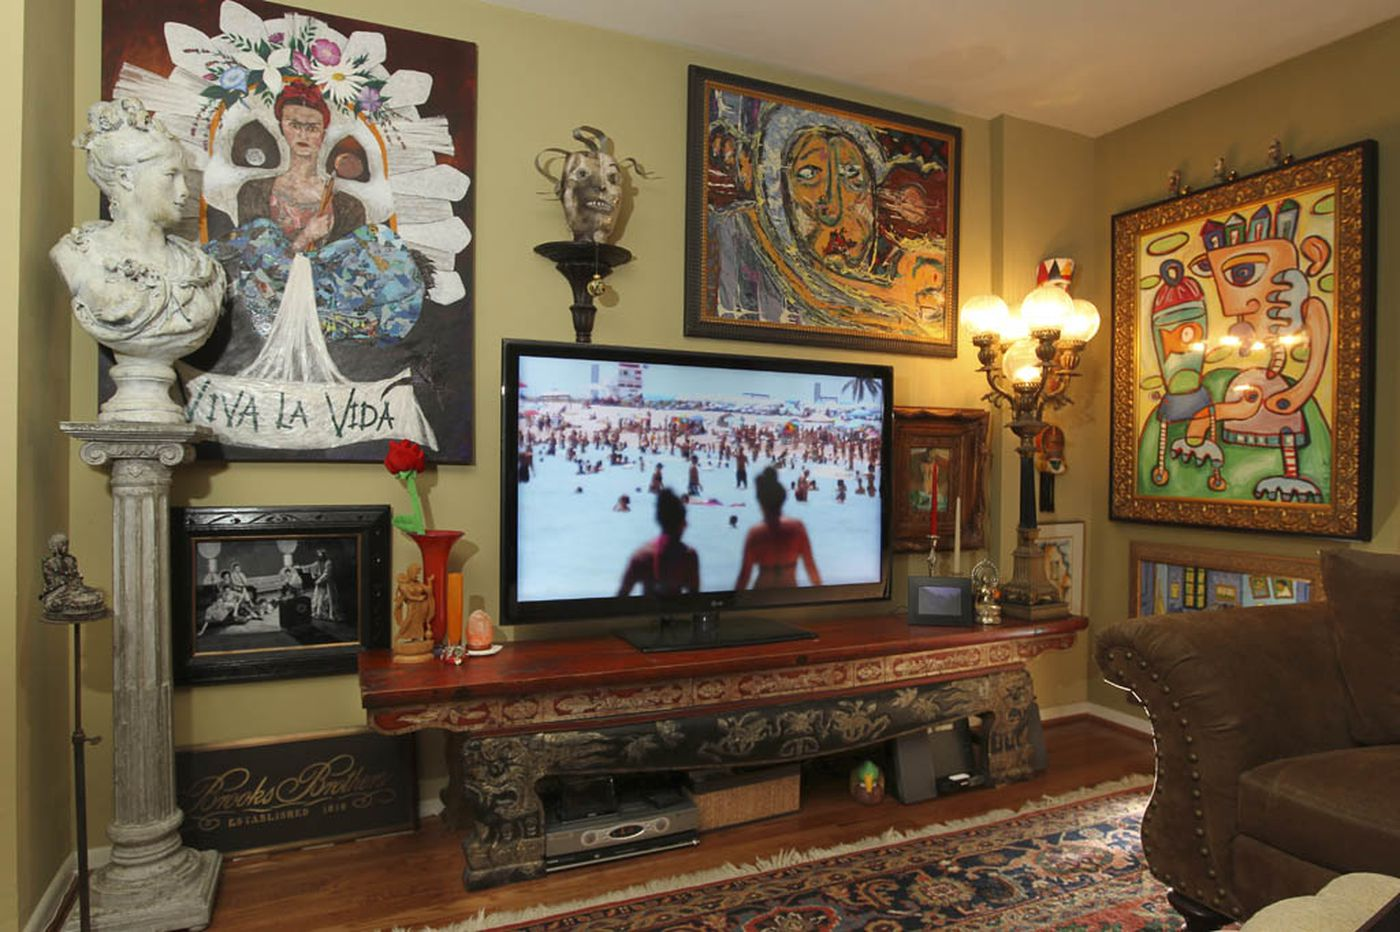 Ask Jennifer Adams: How to hide your living room TV in plain sight